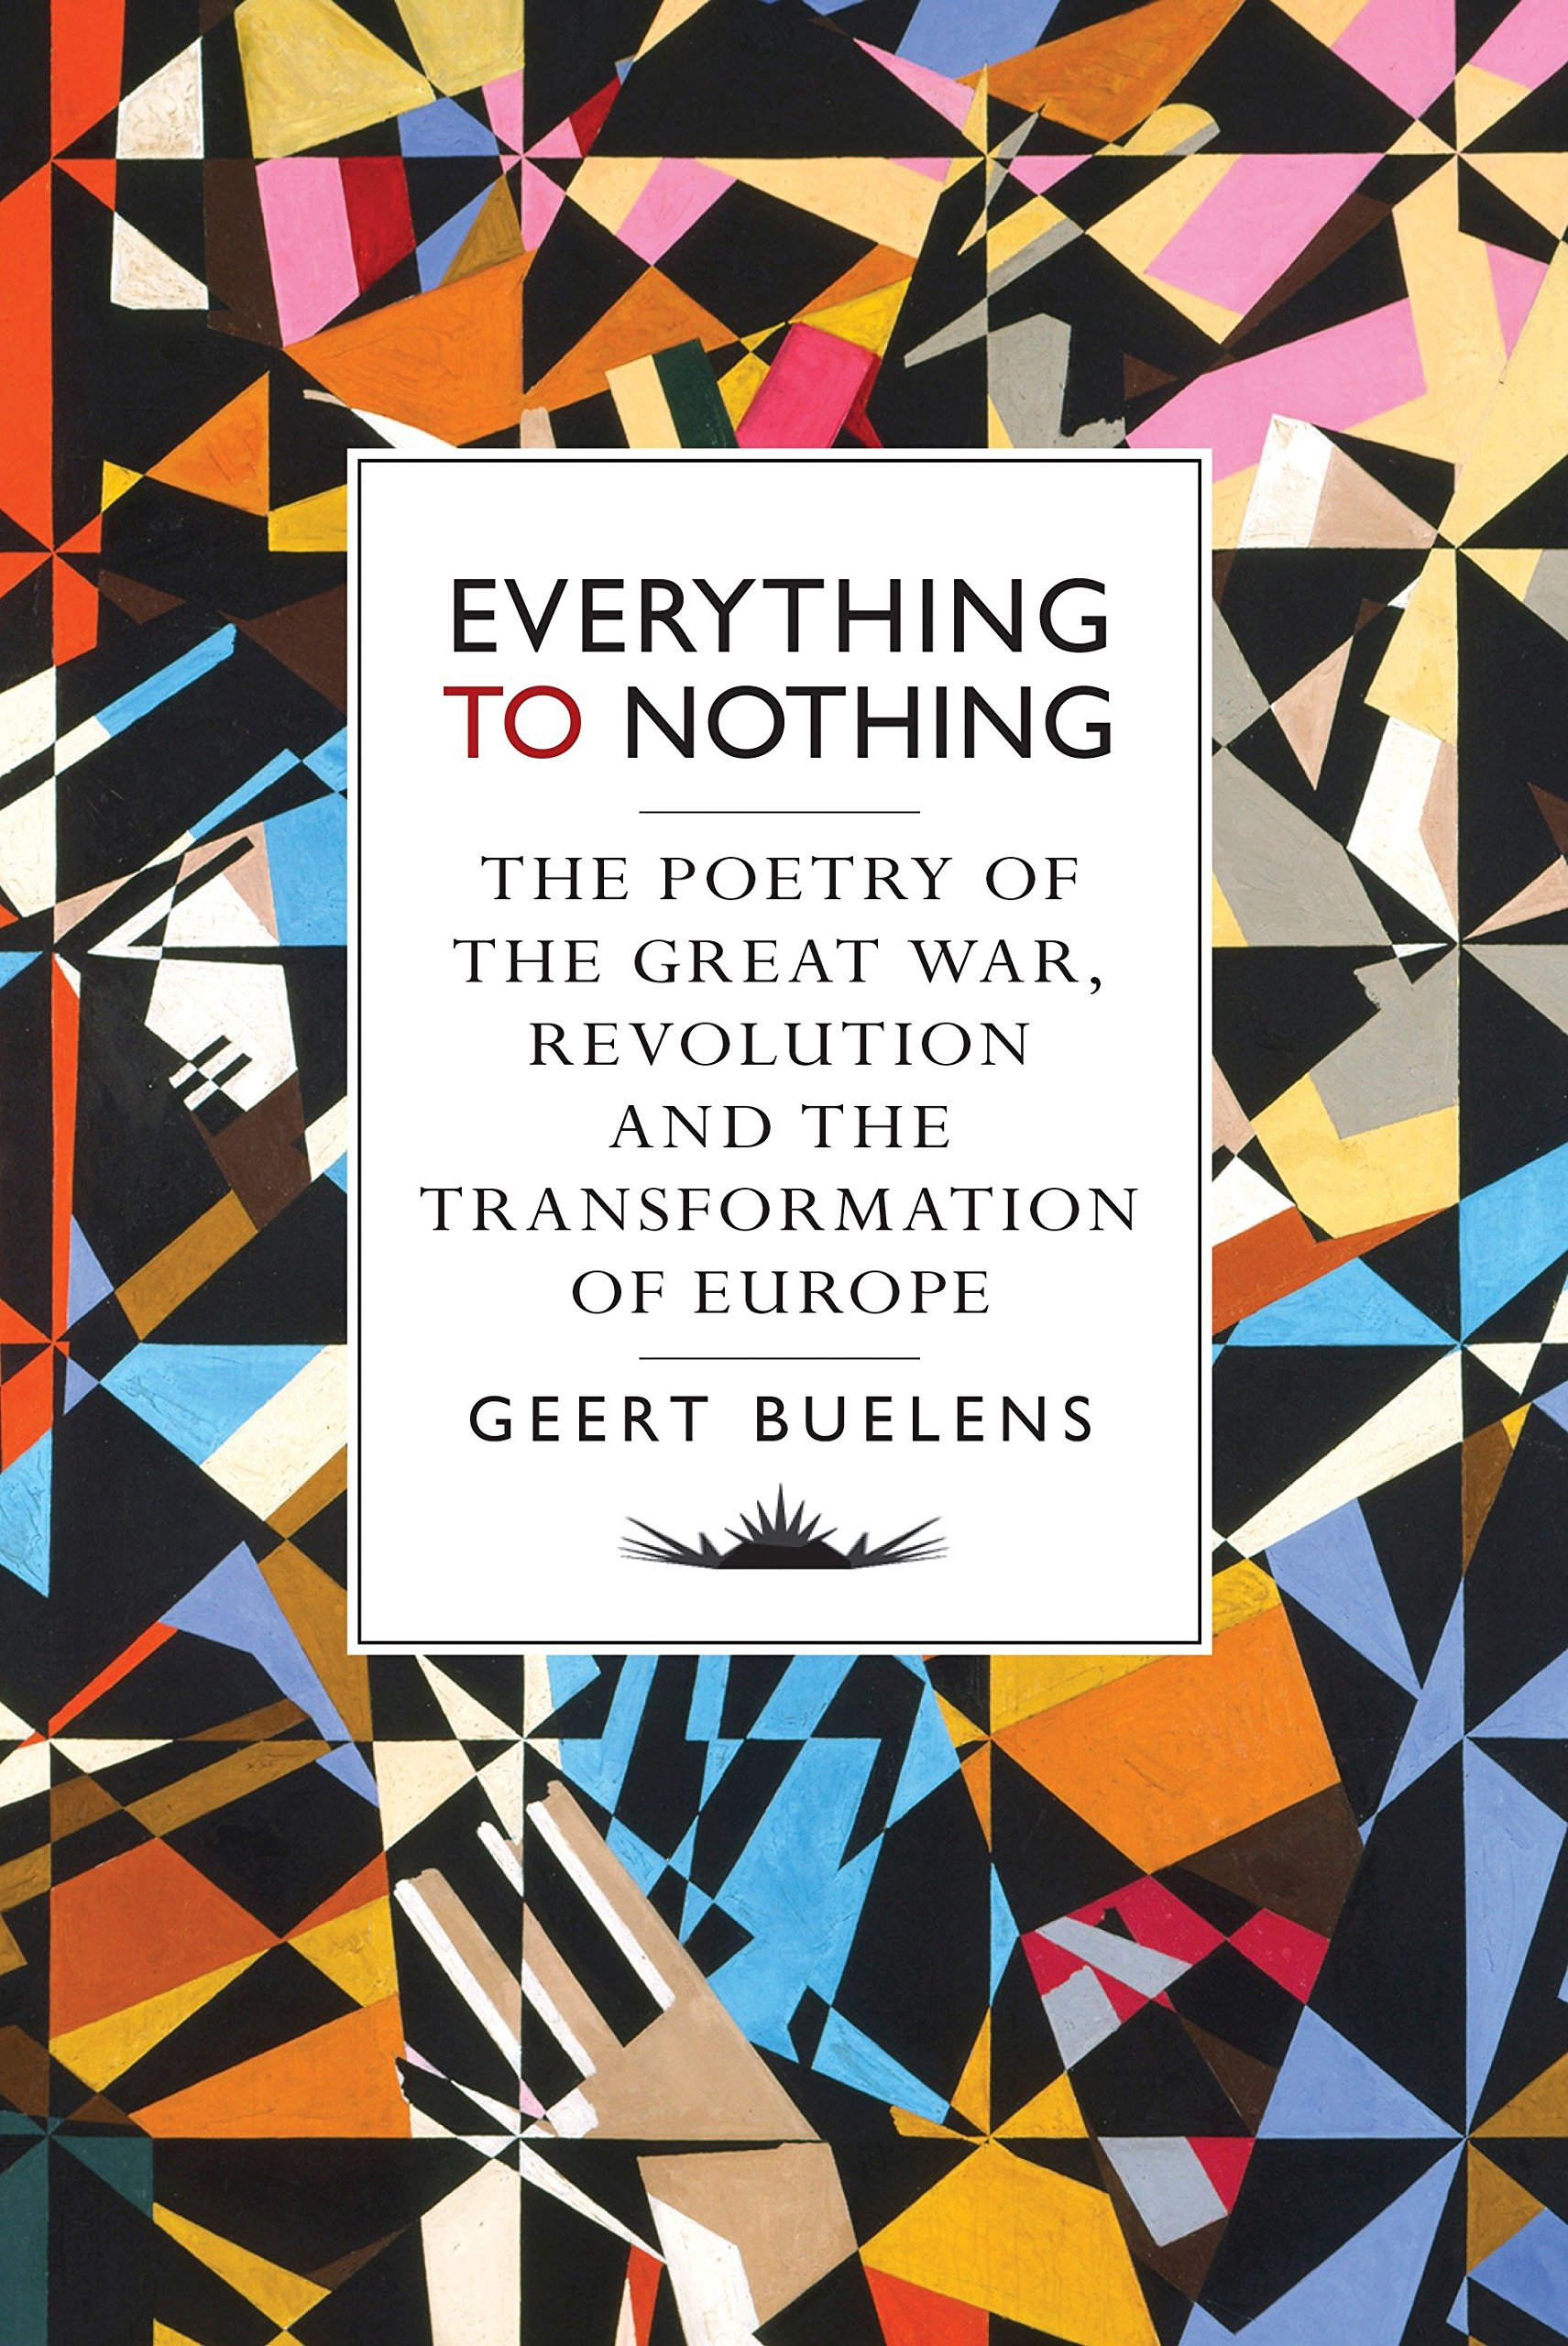 Geert Buelens, Everything to Nothing, translated by David McKay. Verso, 2015. HB.